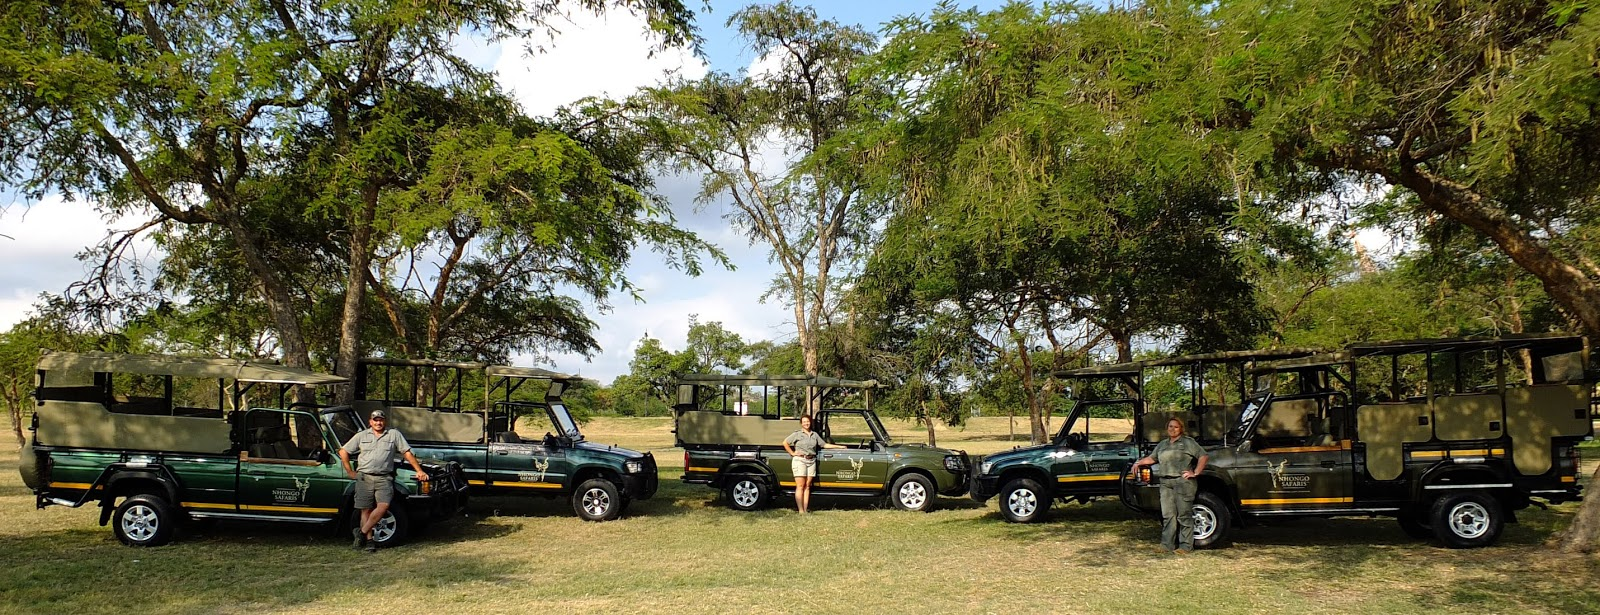 Kruger Park Safaris Ranger Blog: Some of Nhongo Safaris Fleet of